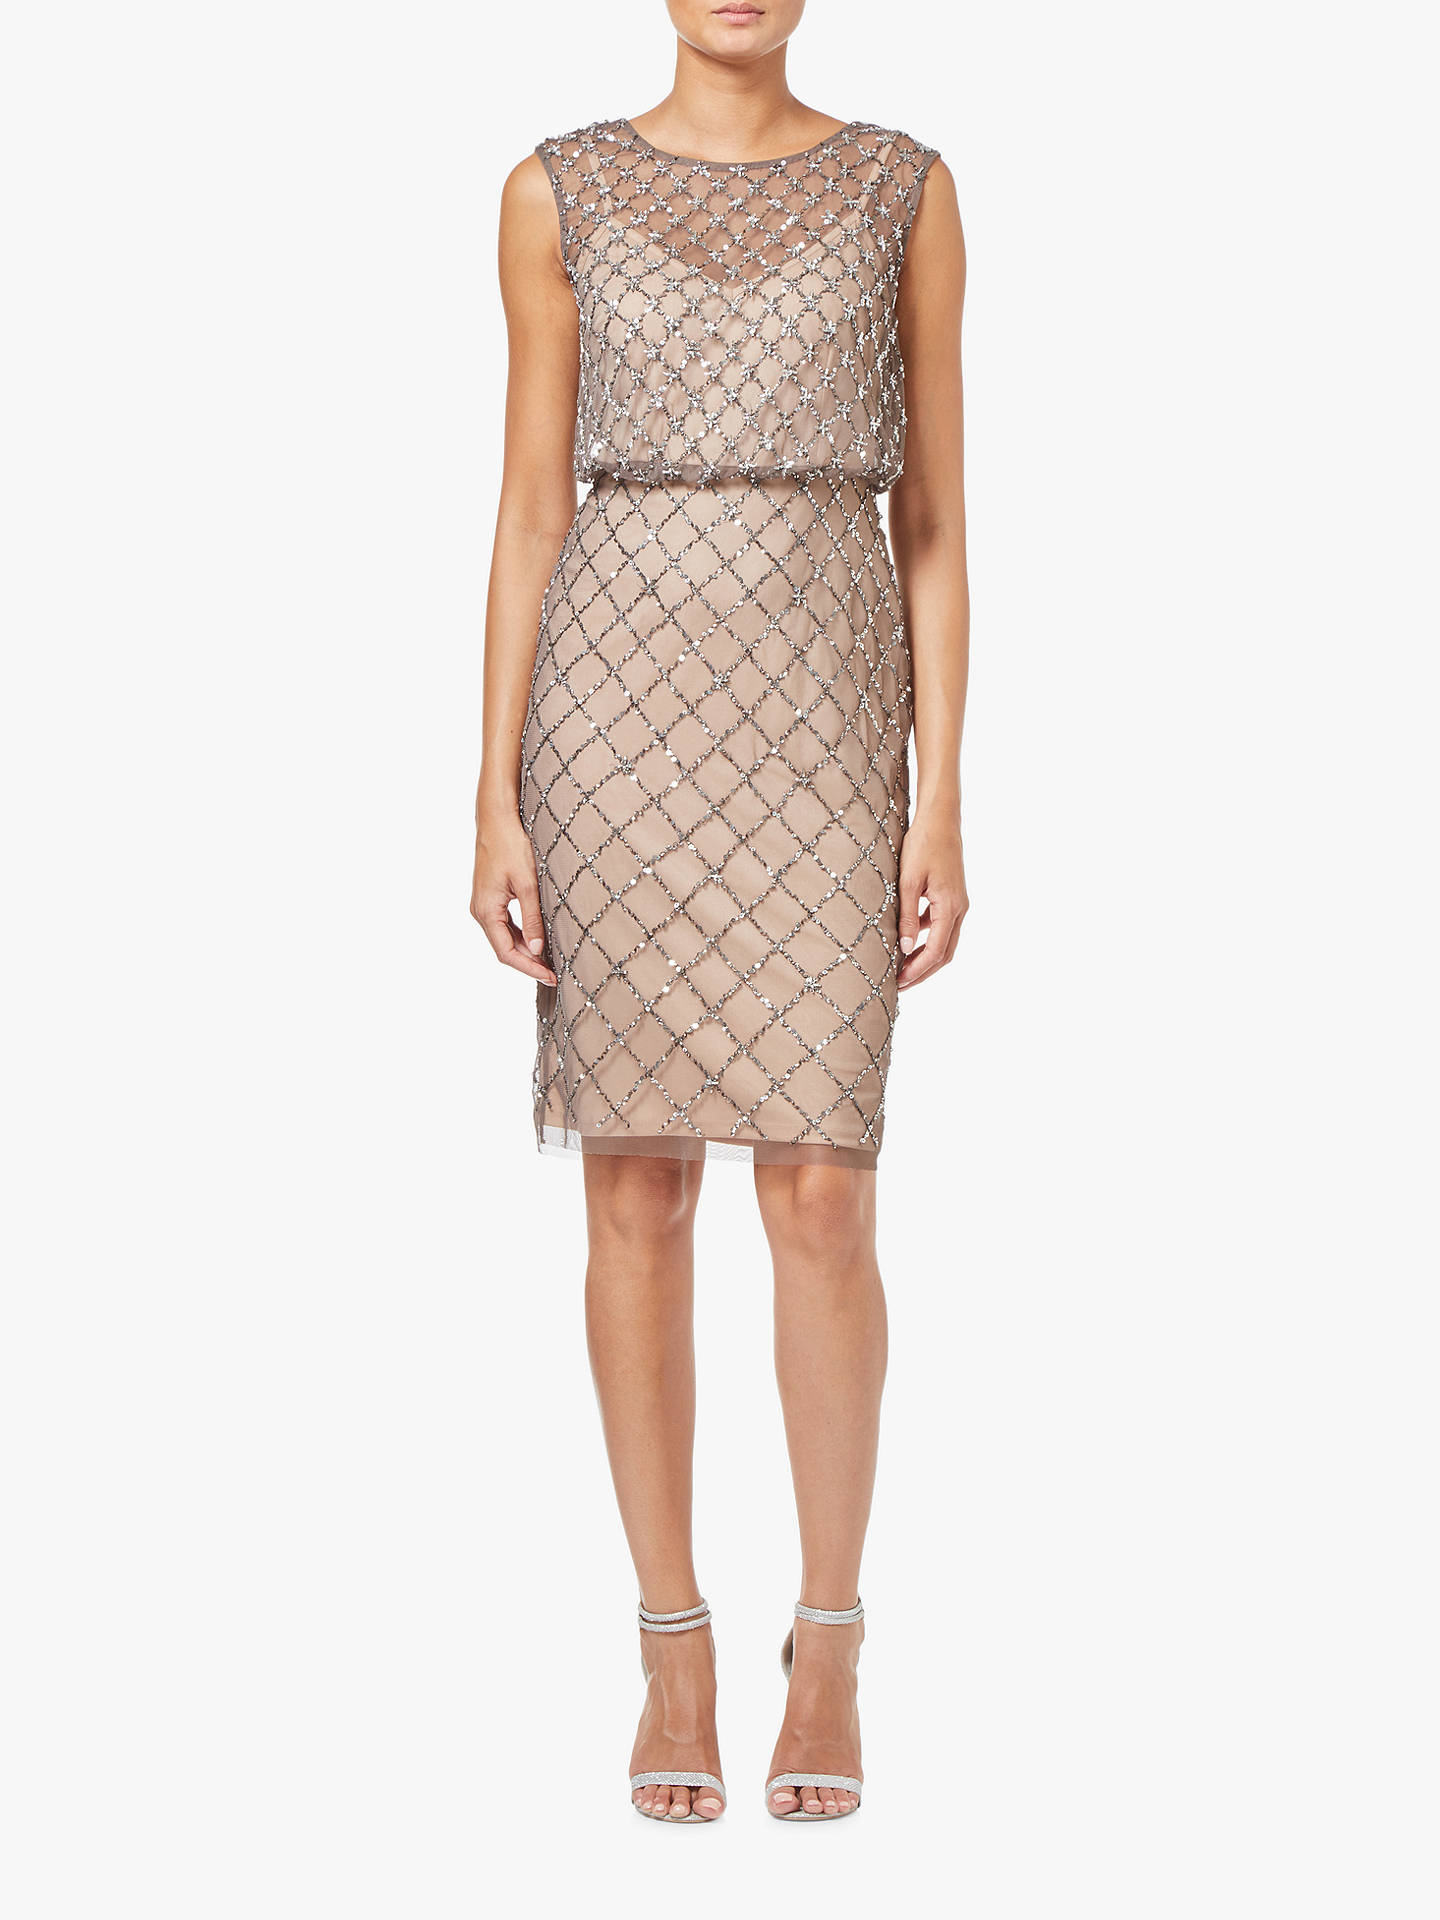 Buy Adrianna Papell Beaded Tulle Overlay Dress, Lead/Nude, 6 Online at johnlewis.com